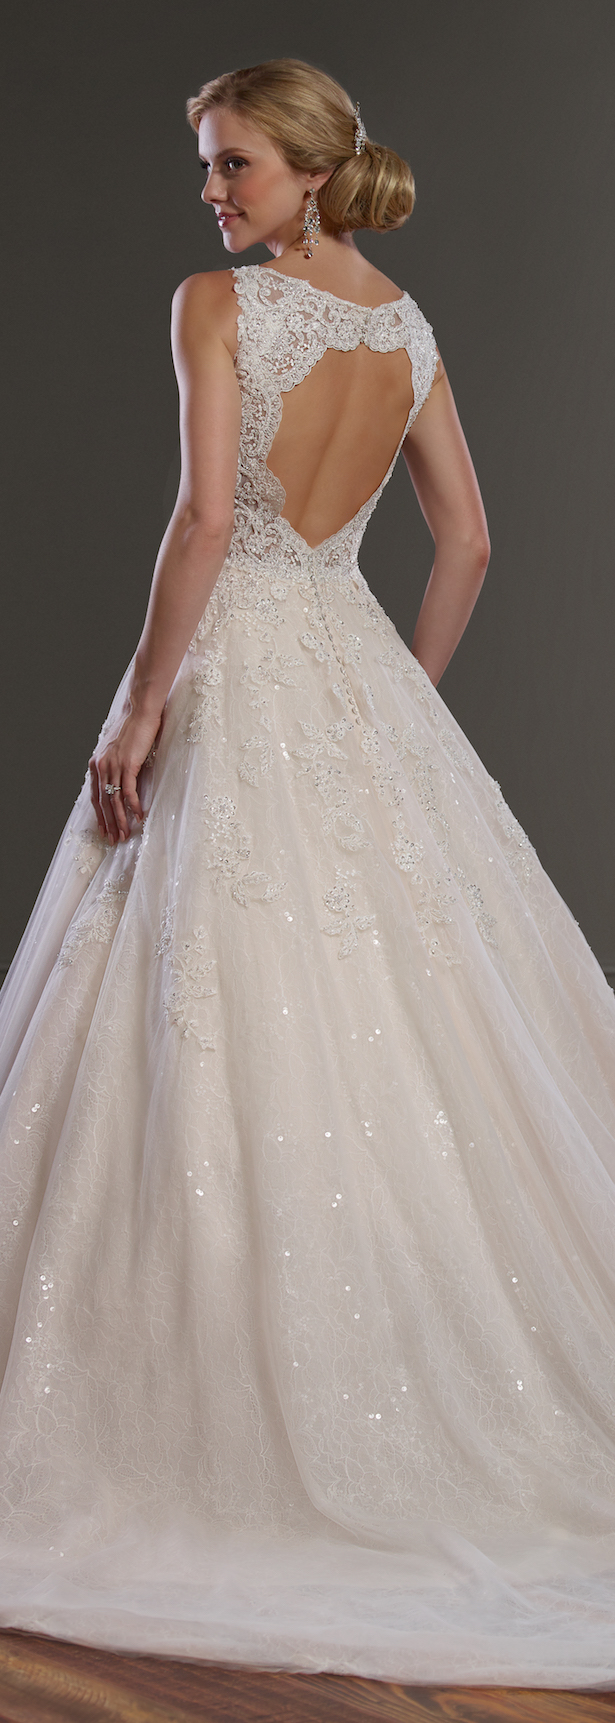 Childrens Dresses For Weddings 67 Beautiful  Wedding Dress by